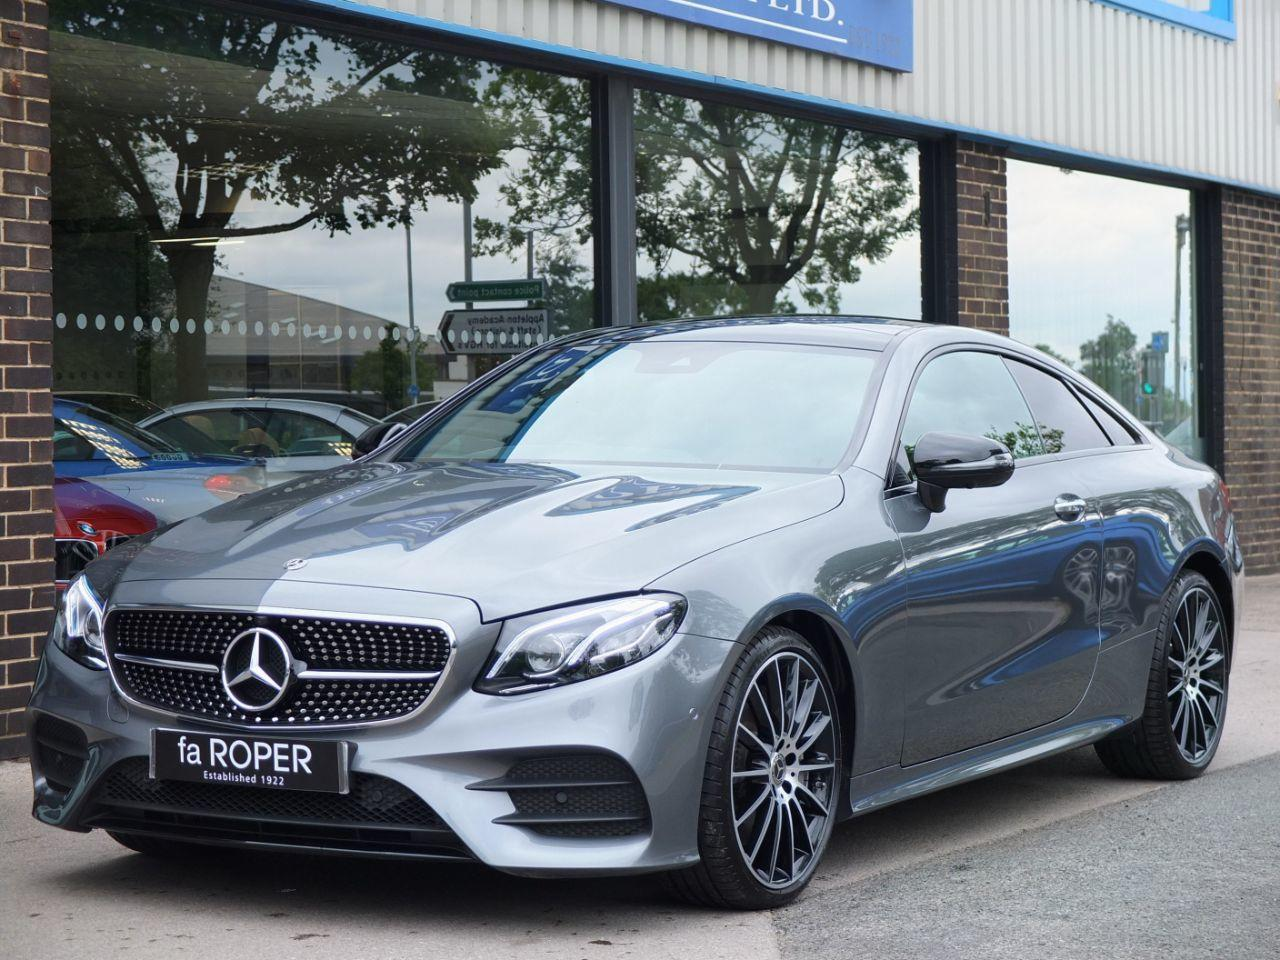 Mercedes-Benz E Class 2.0 E300 AMG Line Premium Plus Coupe 9G-tronic Coupe Petrol Selenite Grey MetallicMercedes-Benz E Class 2.0 E300 AMG Line Premium Plus Coupe 9G-tronic Coupe Petrol Selenite Grey Metallic at fa Roper Ltd Bradford